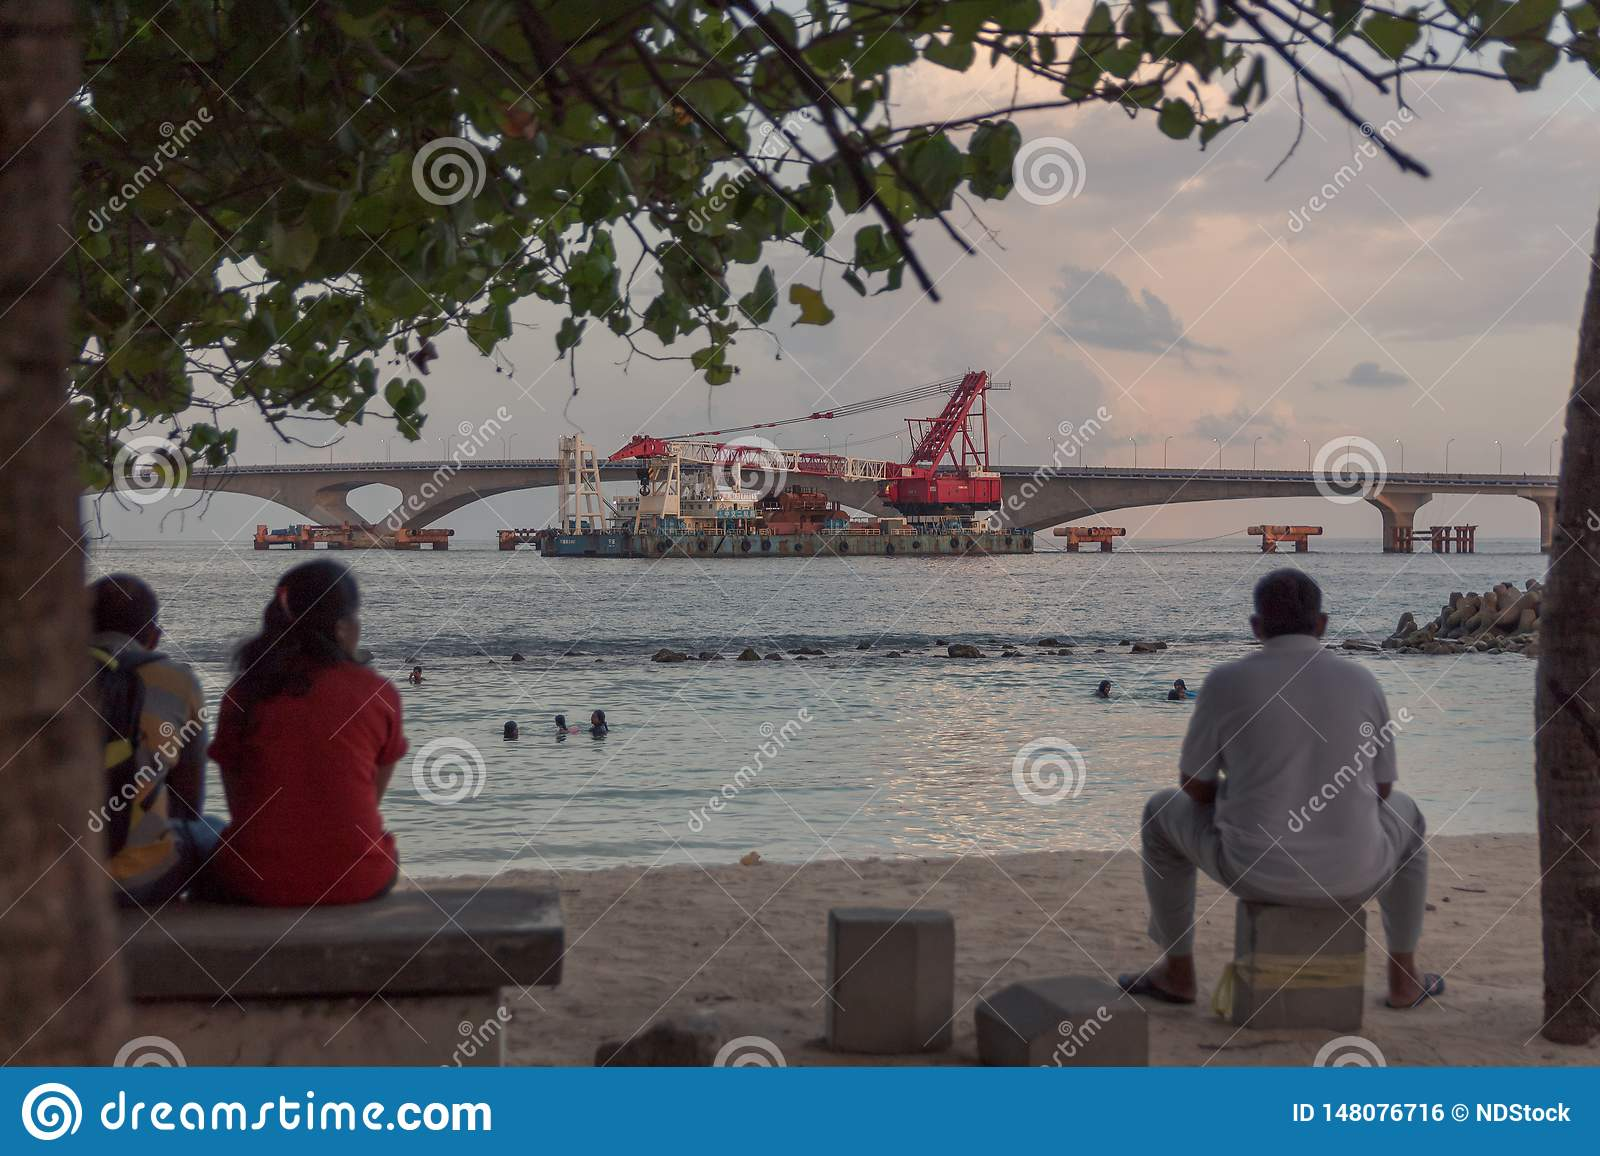 People seated and watching bathers in a small beach in Male, Maldives